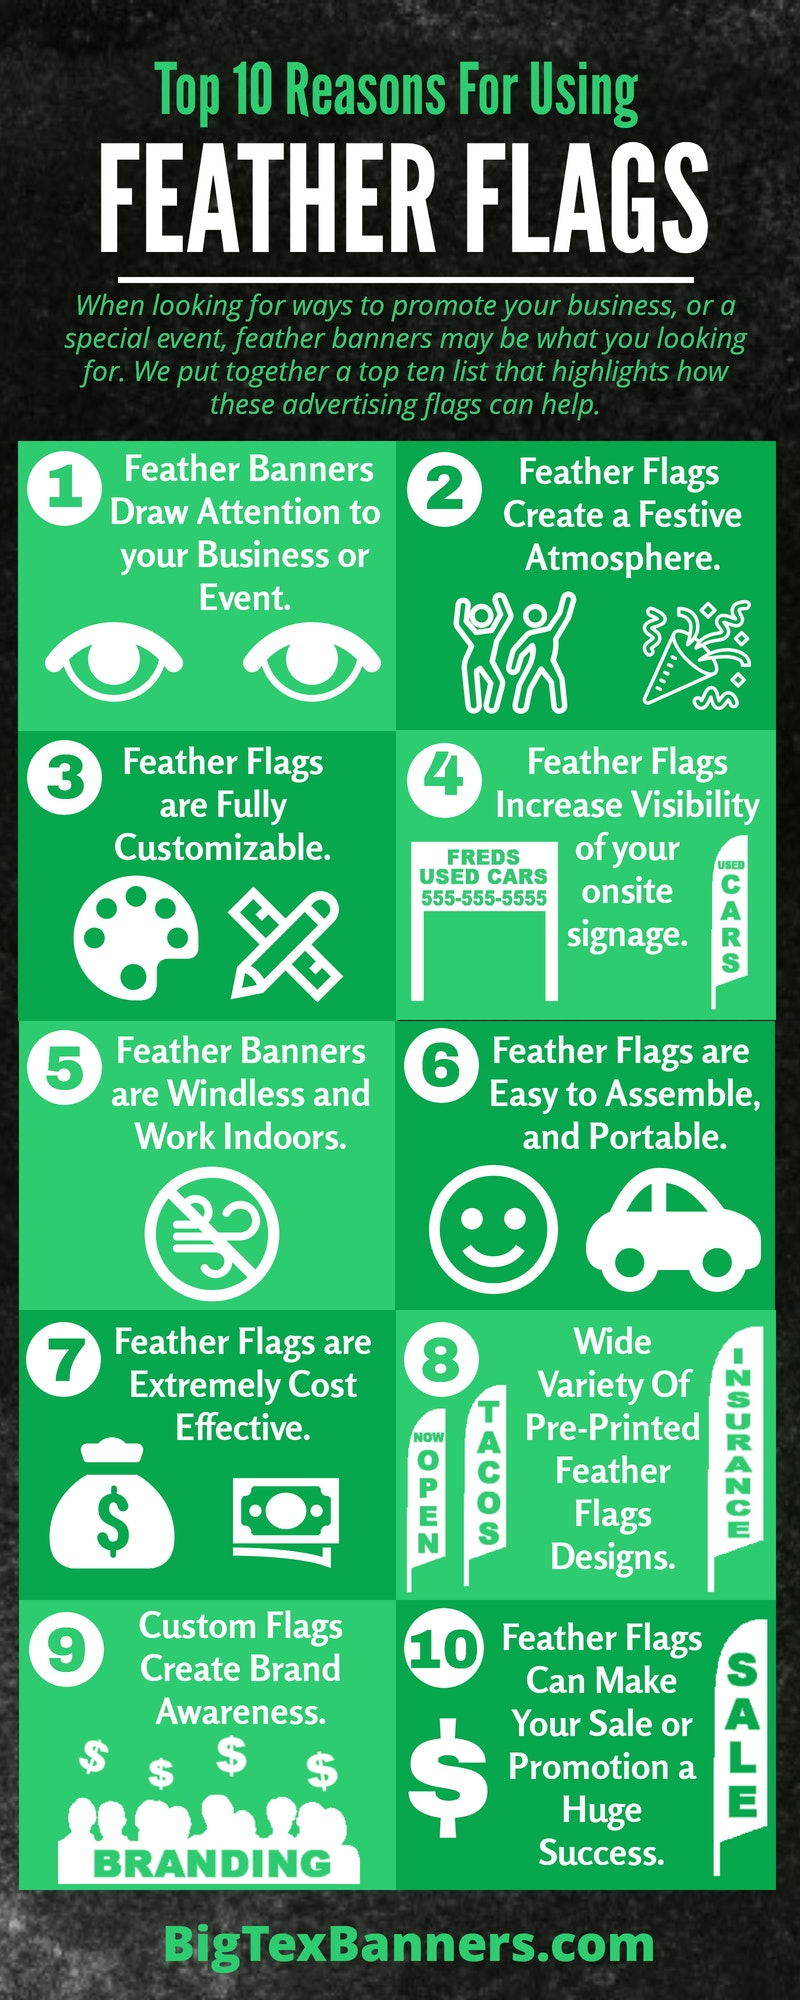 Top 10 Reasons for Using Feather Flags